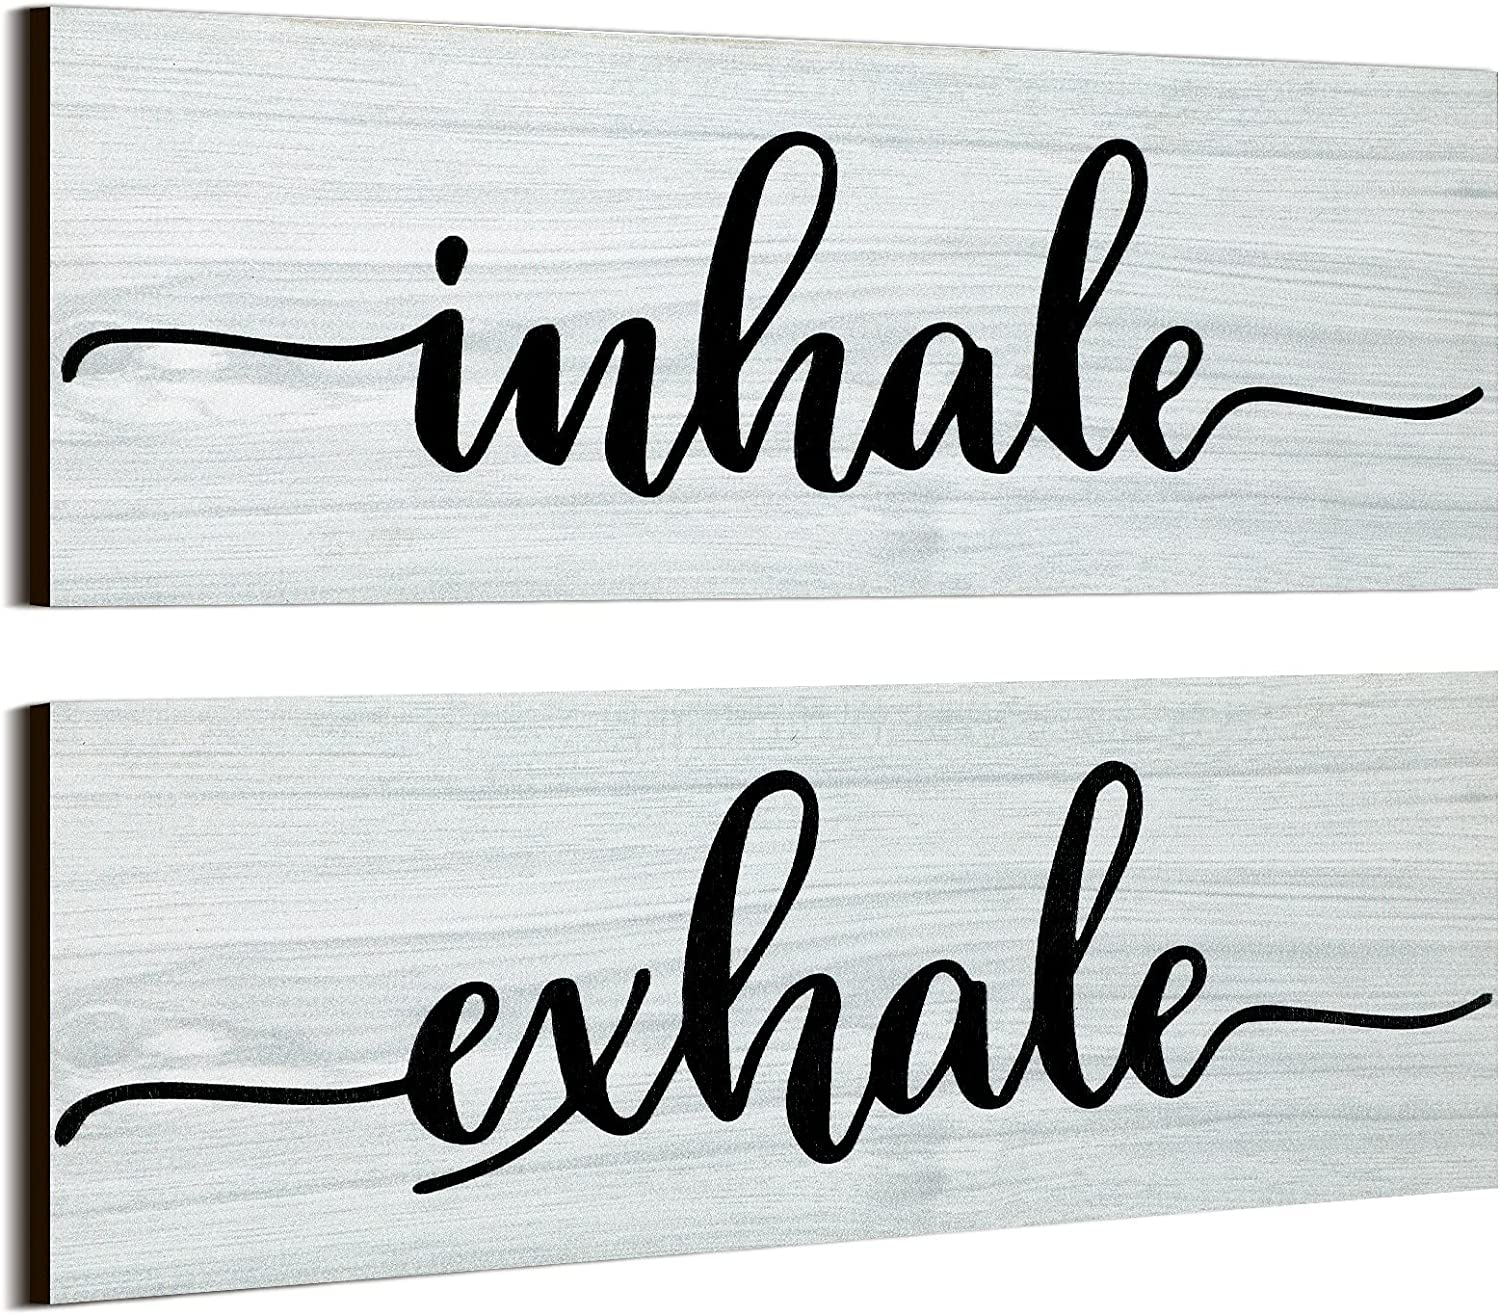 Jetec 2 Pieces Inhale Exhale Wood Sign Art, Inspirational Farmhouse Wall Plaque Wooden Rustic Signs for Bedroom Wall Art Home Decor Bedroom Decor Farmhouse Style Gallery Wall (White)